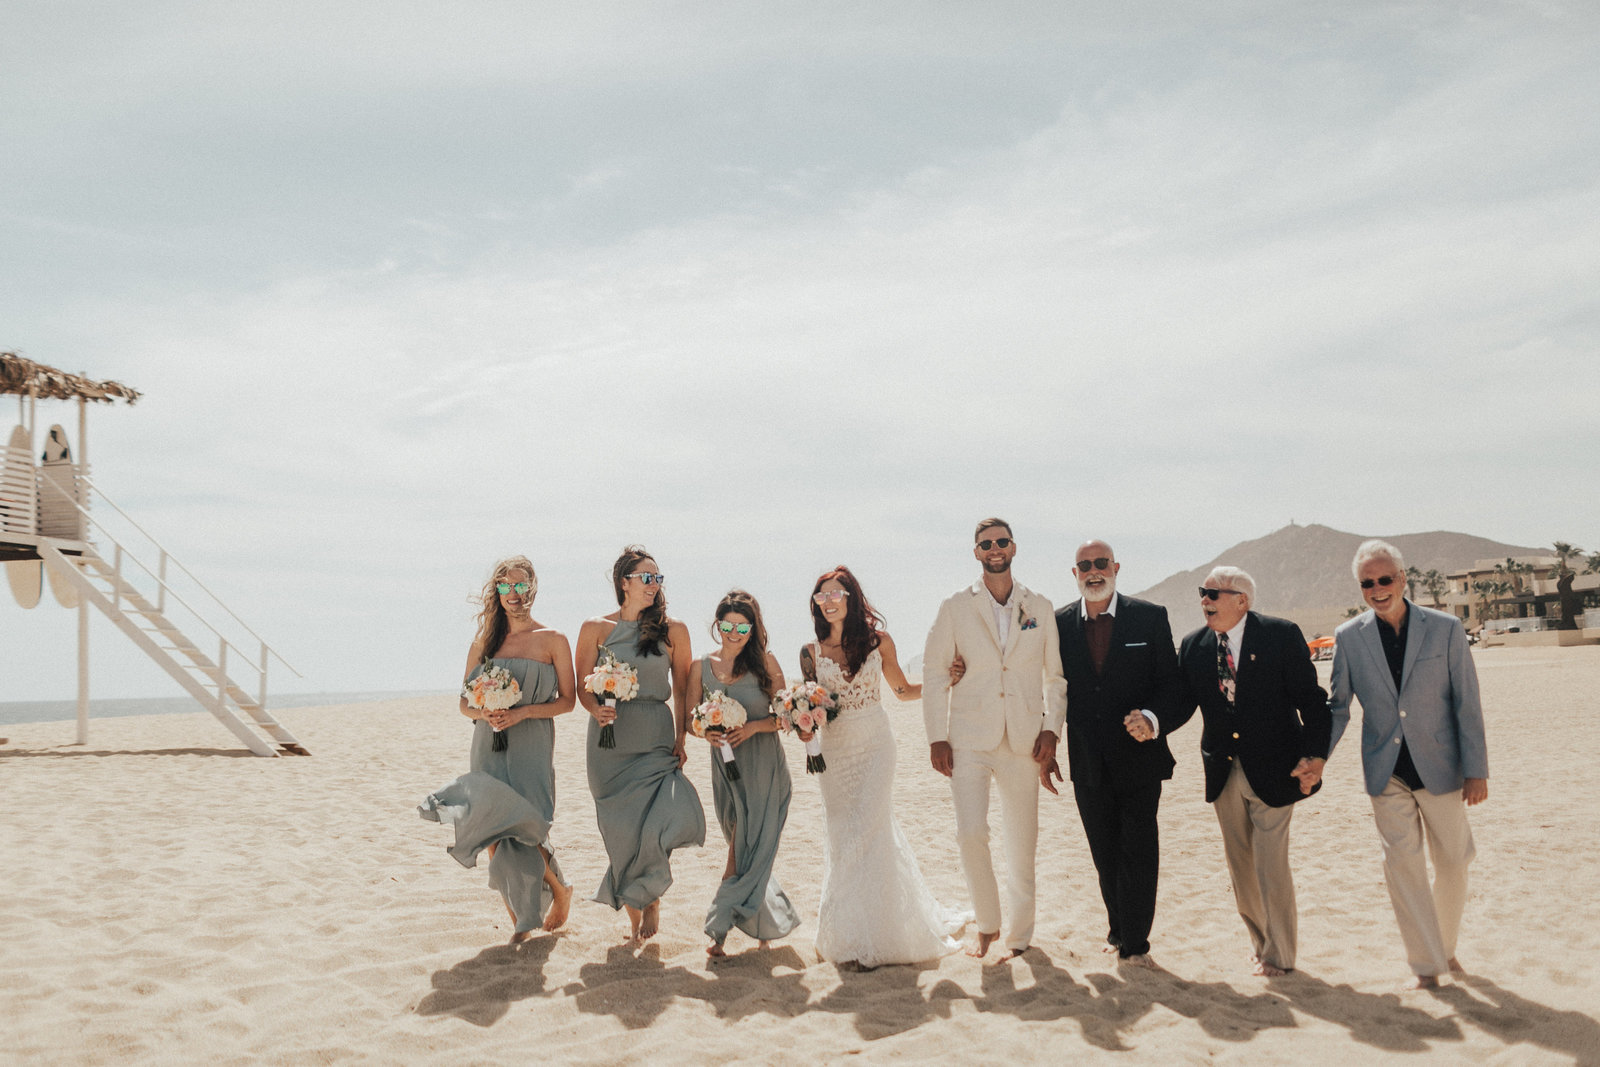 jenna+dave pueblo bonito pacifica destination wedding-65